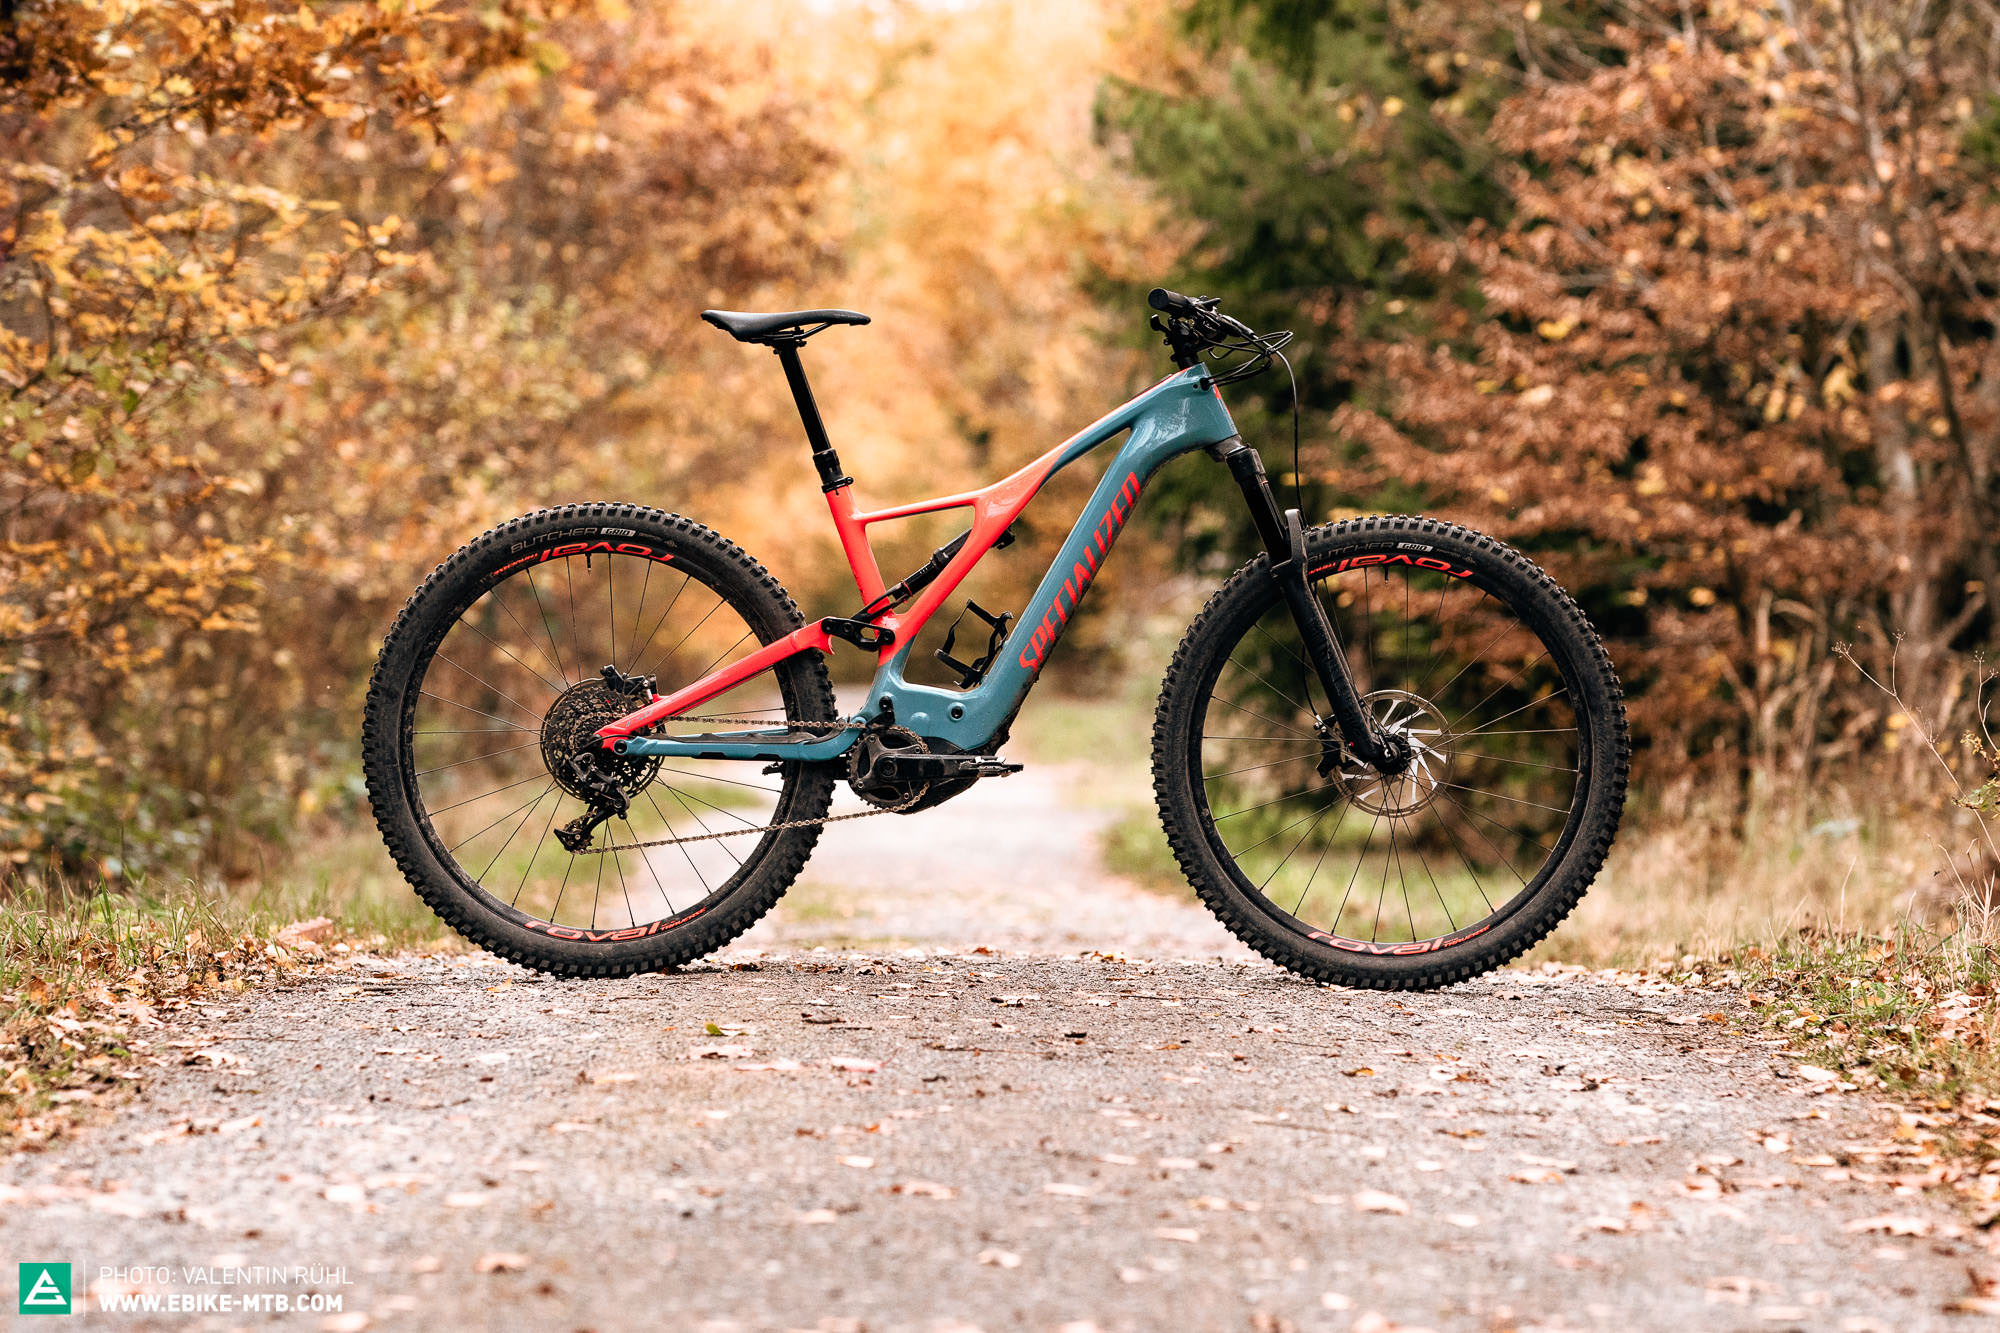 020b57255b8 First ride review: Specialized Turbo Levo 2019 – The beginning of a new  eMTB era? 18.09.2018